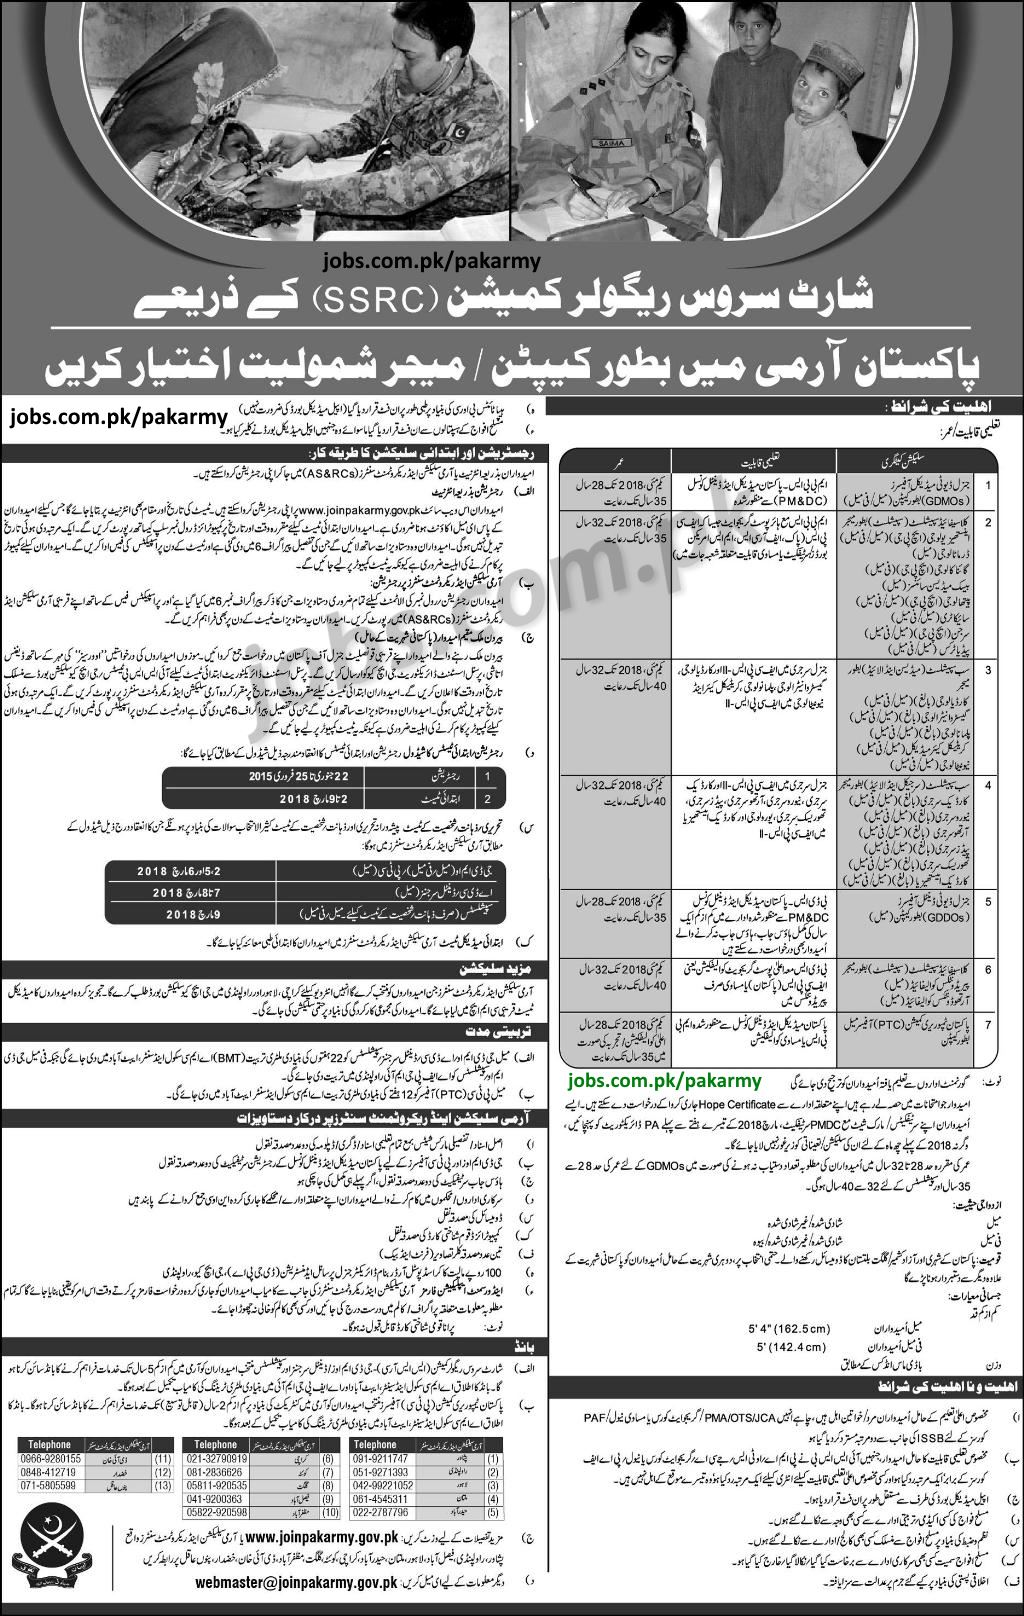 Pakarmy-jan2018 Online Form For Govt Job on railway jobs, industry jobs, english jobs, physics jobs, private sector jobs, law jobs, church jobs, hr jobs,